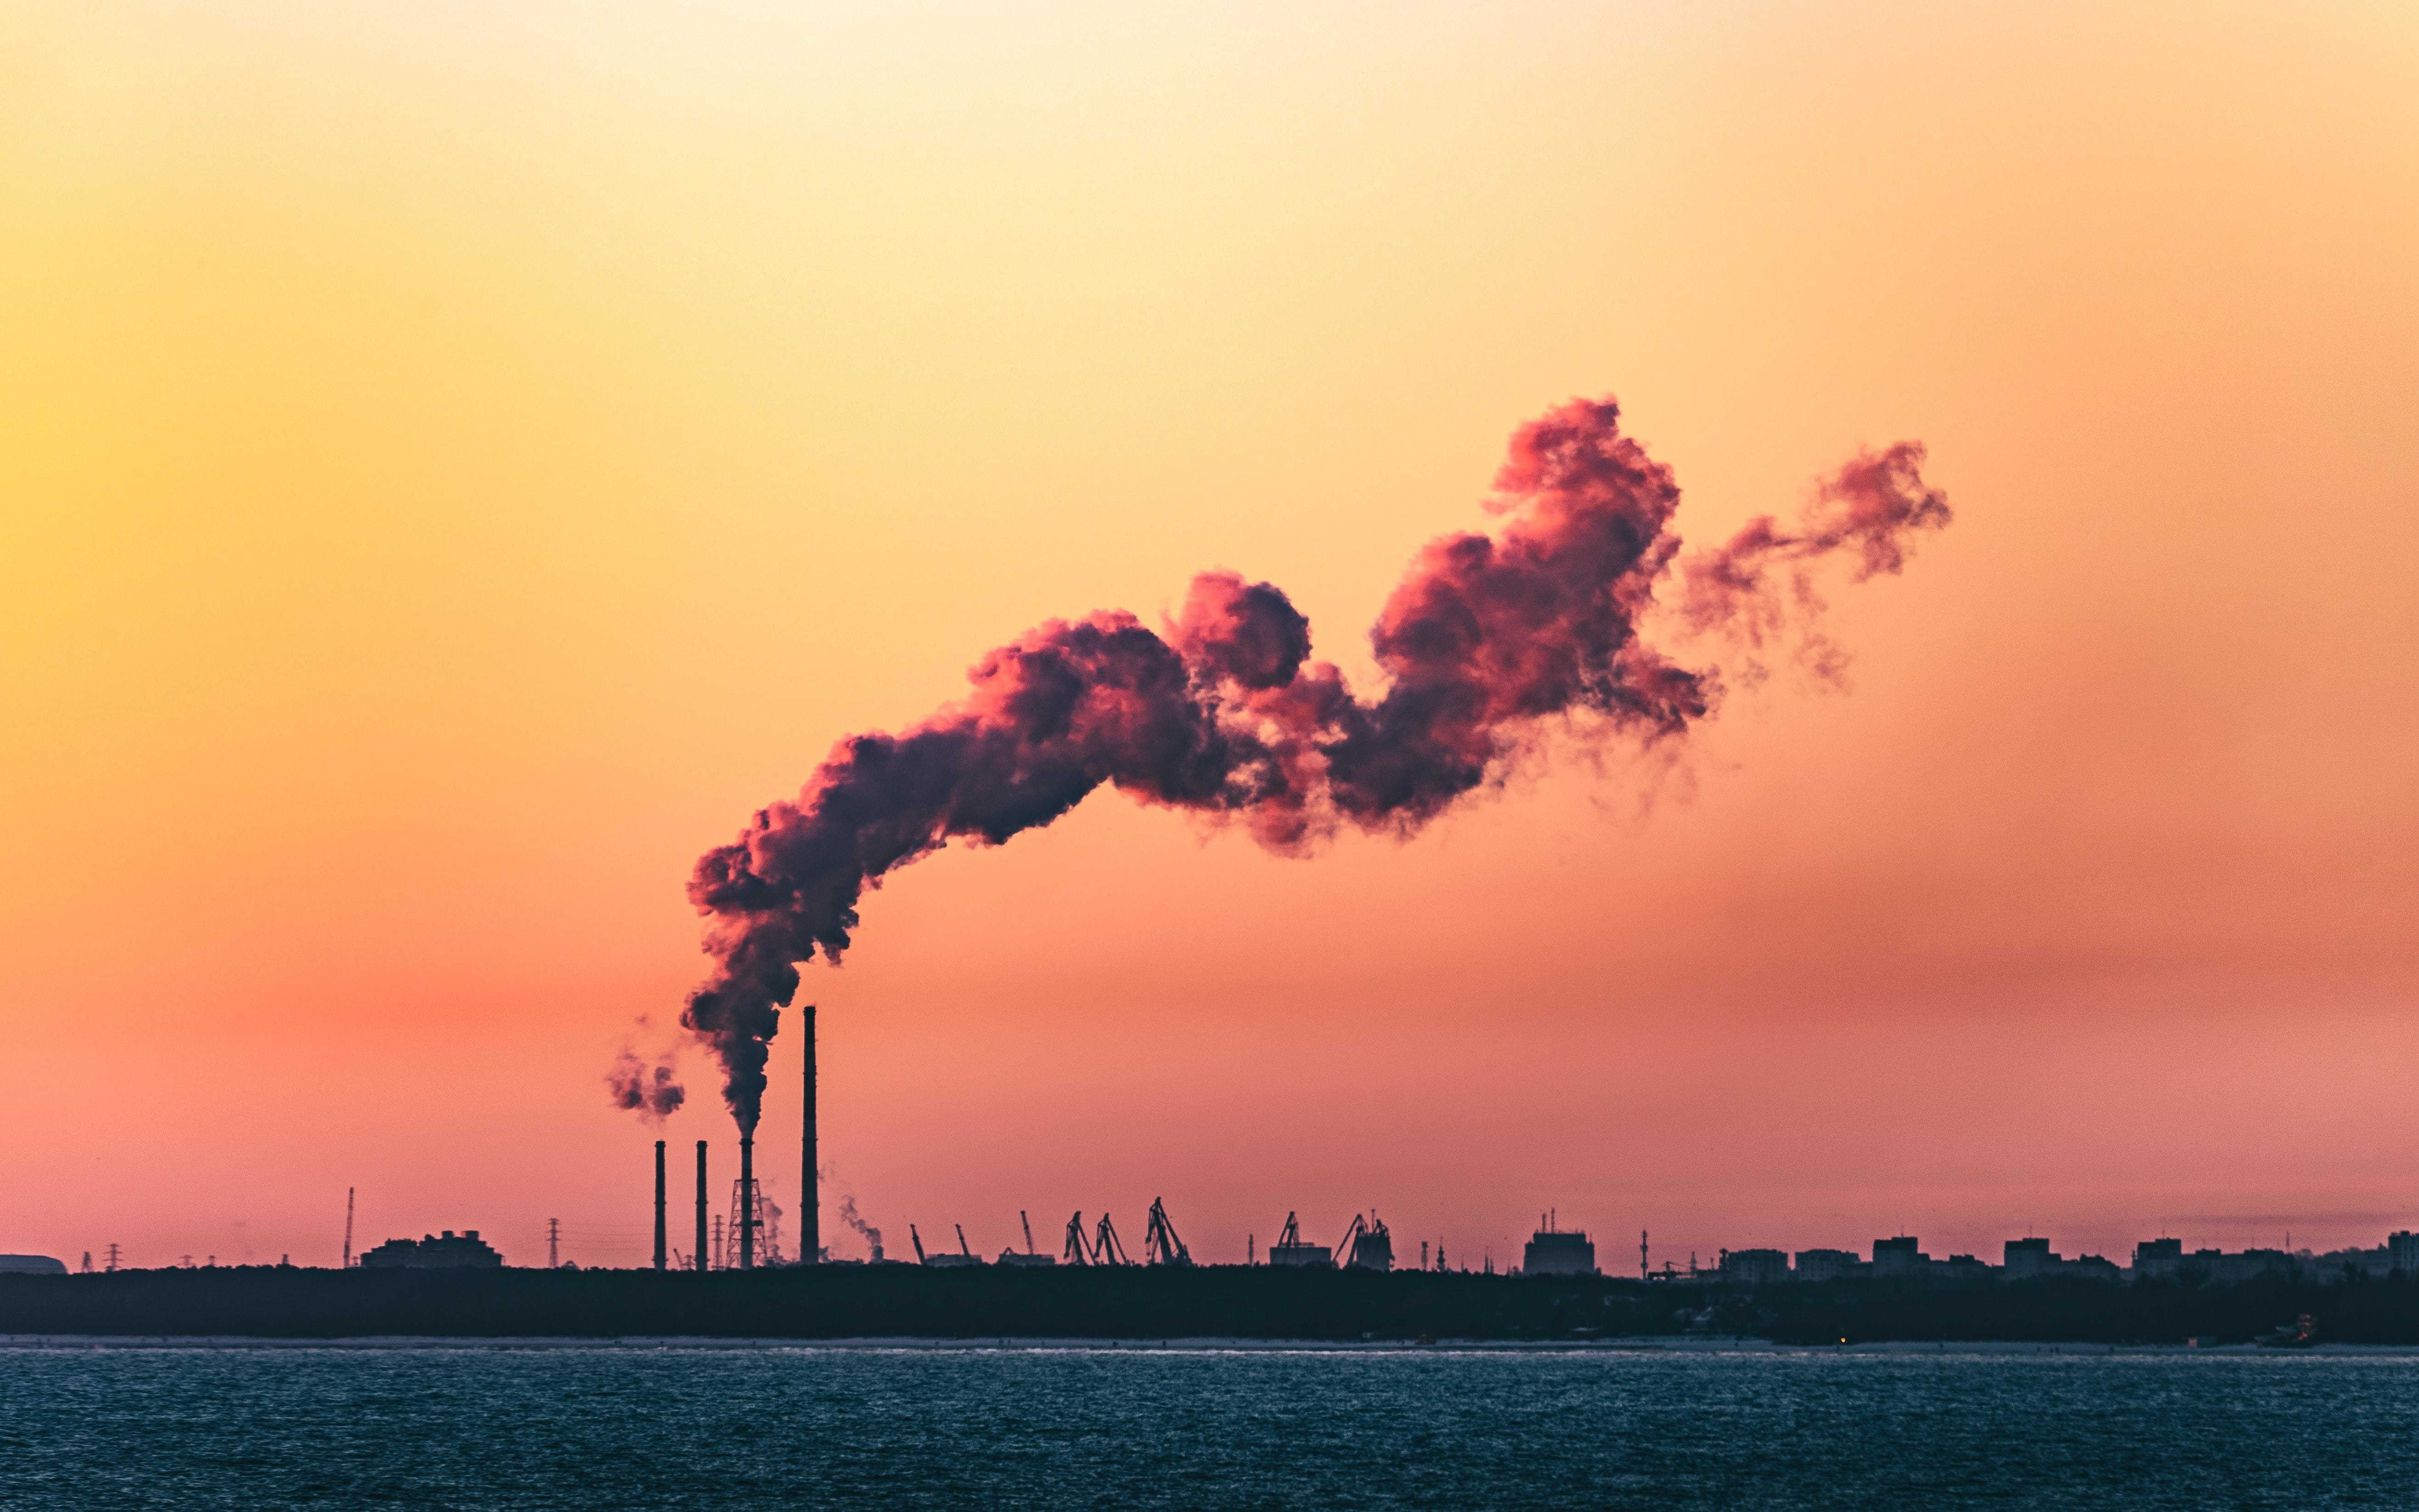 emissions such as the ones coming from this factory are increasing global warming